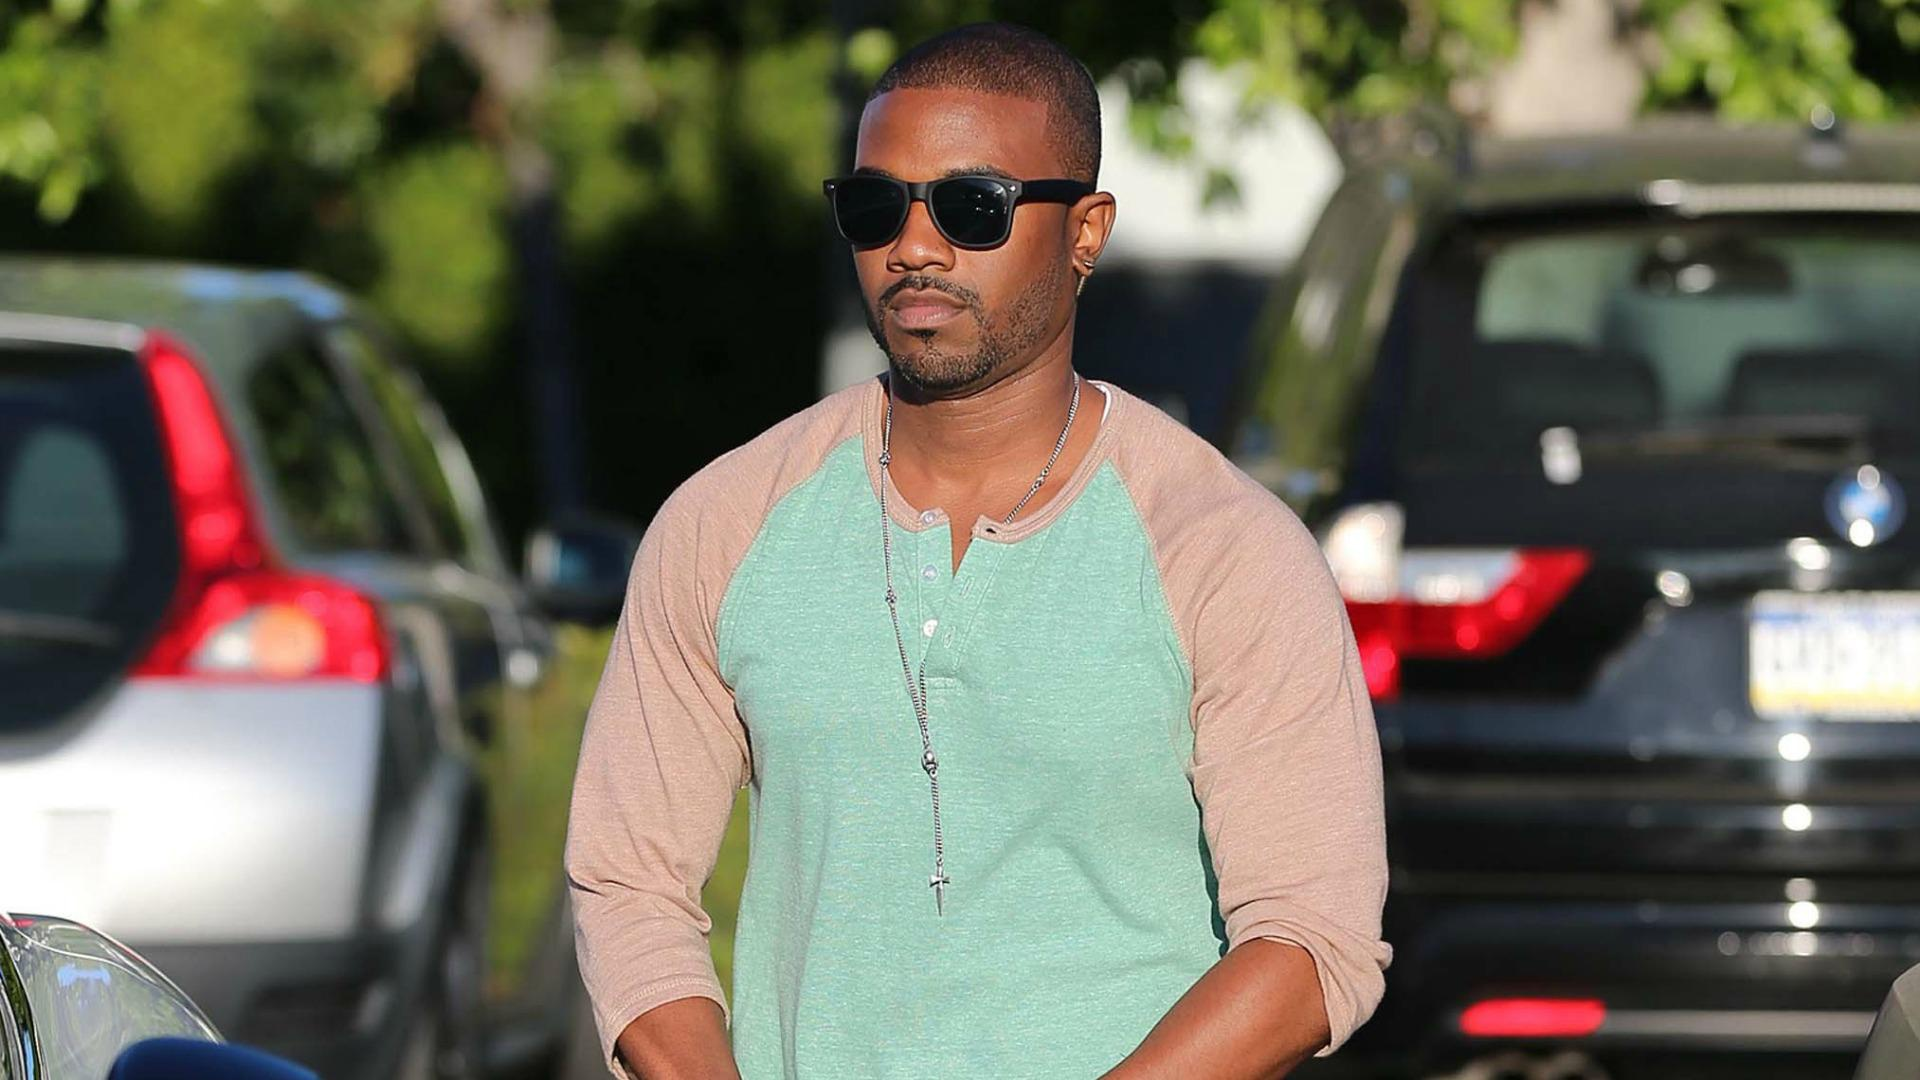 Kim K's ex-boyfriend Ray J gets busted for four crimes